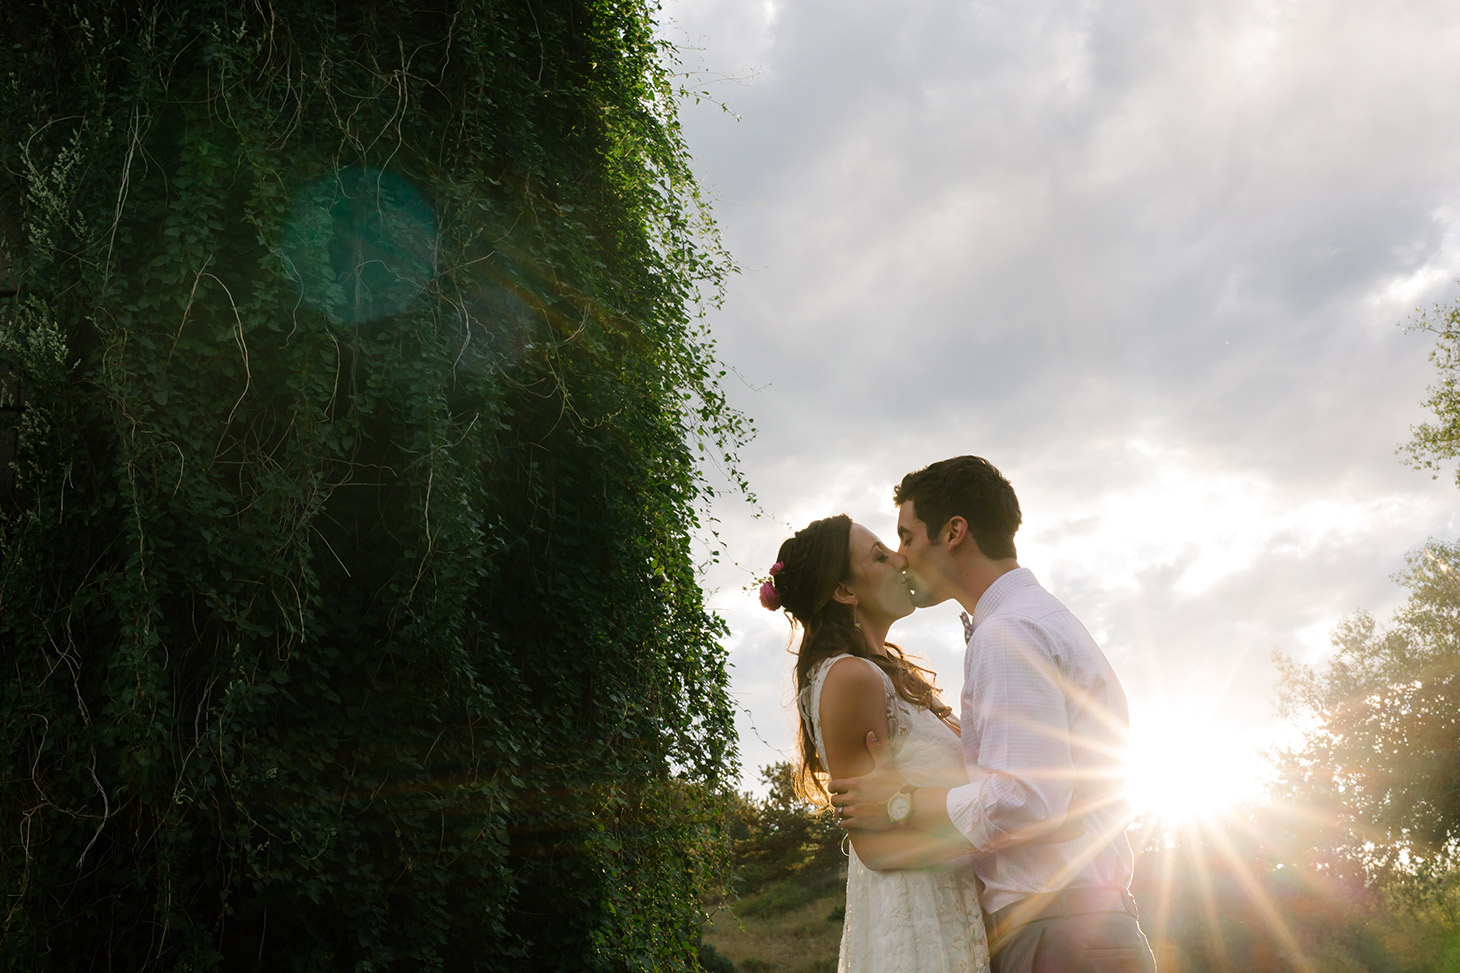 Megan-Newton-Photography-Best-Wedding-Photos-2015-261